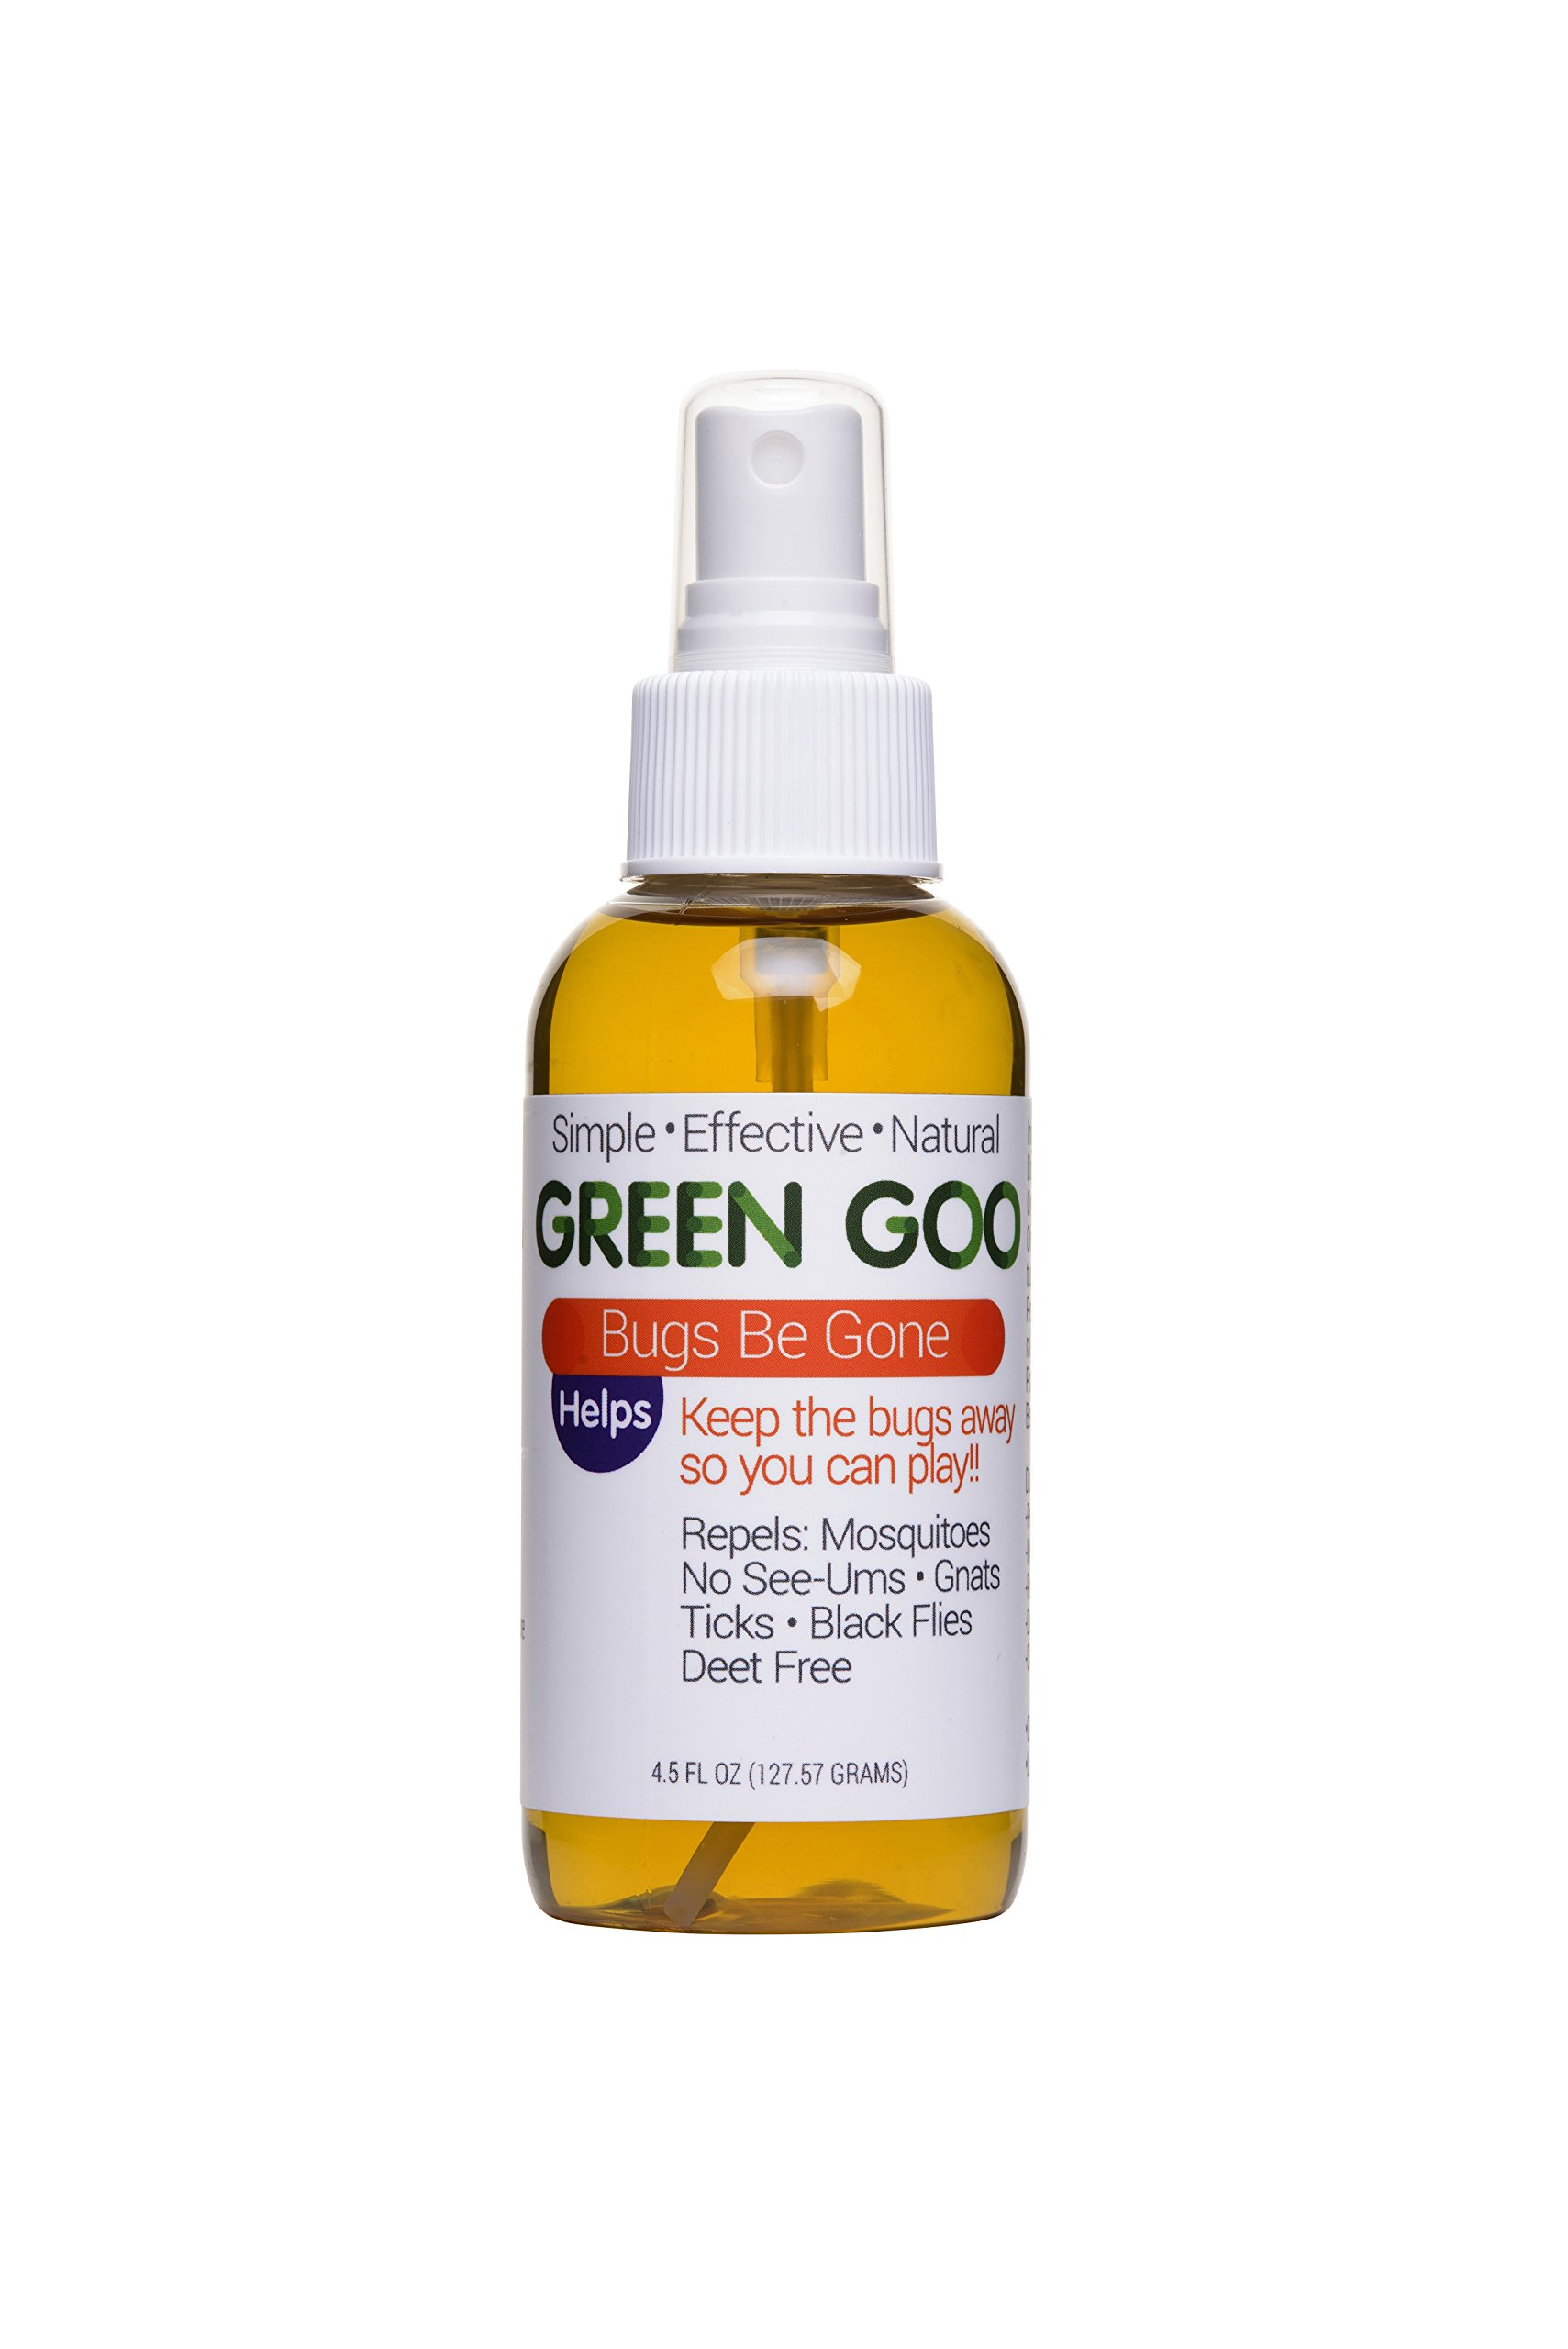 Green Goo Bugs Be Gone Insect Repellant (4.5 oz, 1 Pack)